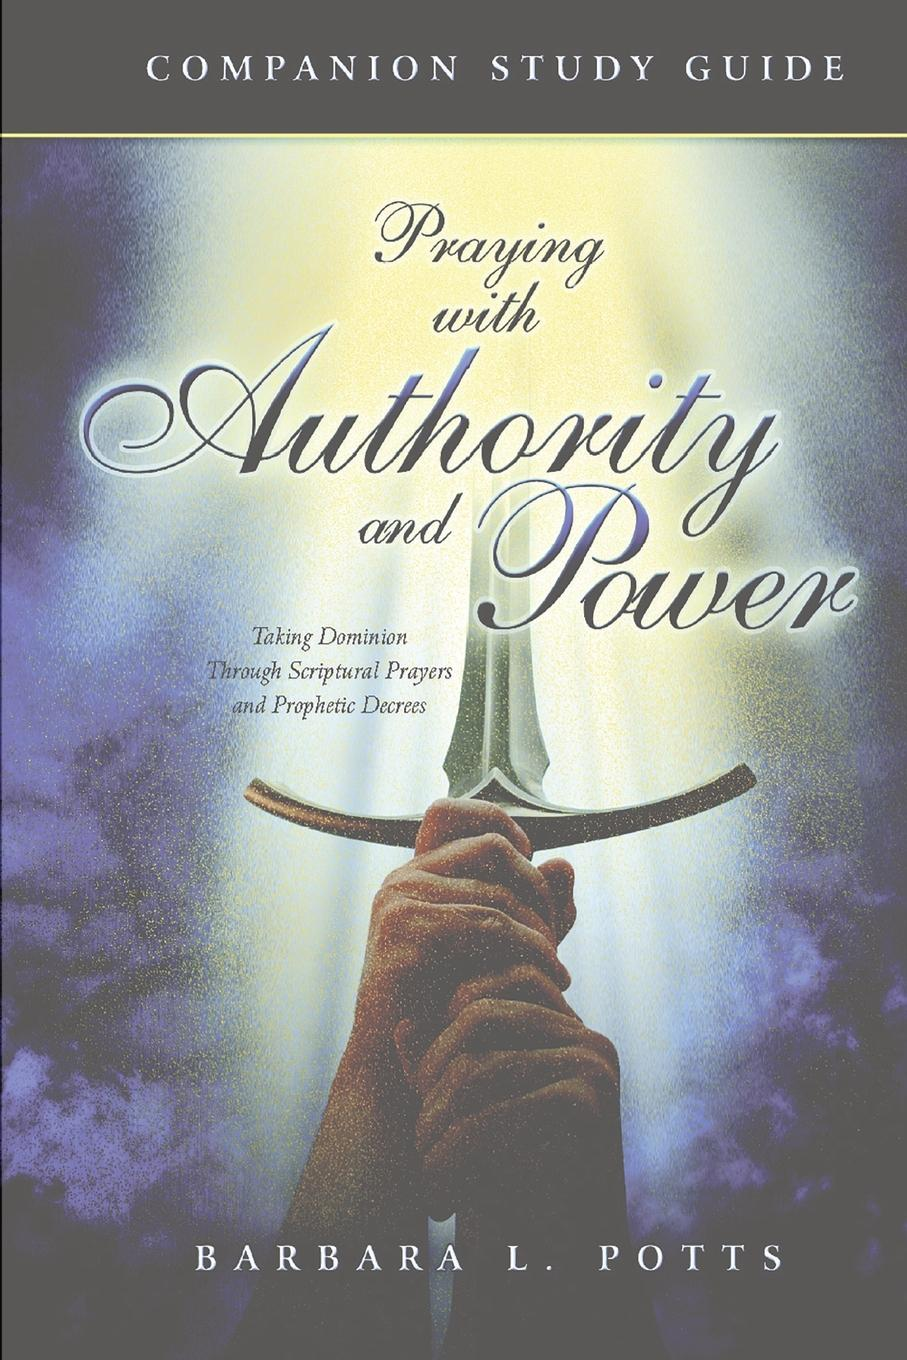 Barabara L Potts Praying With Authority and Power. Companion Study Guide цена